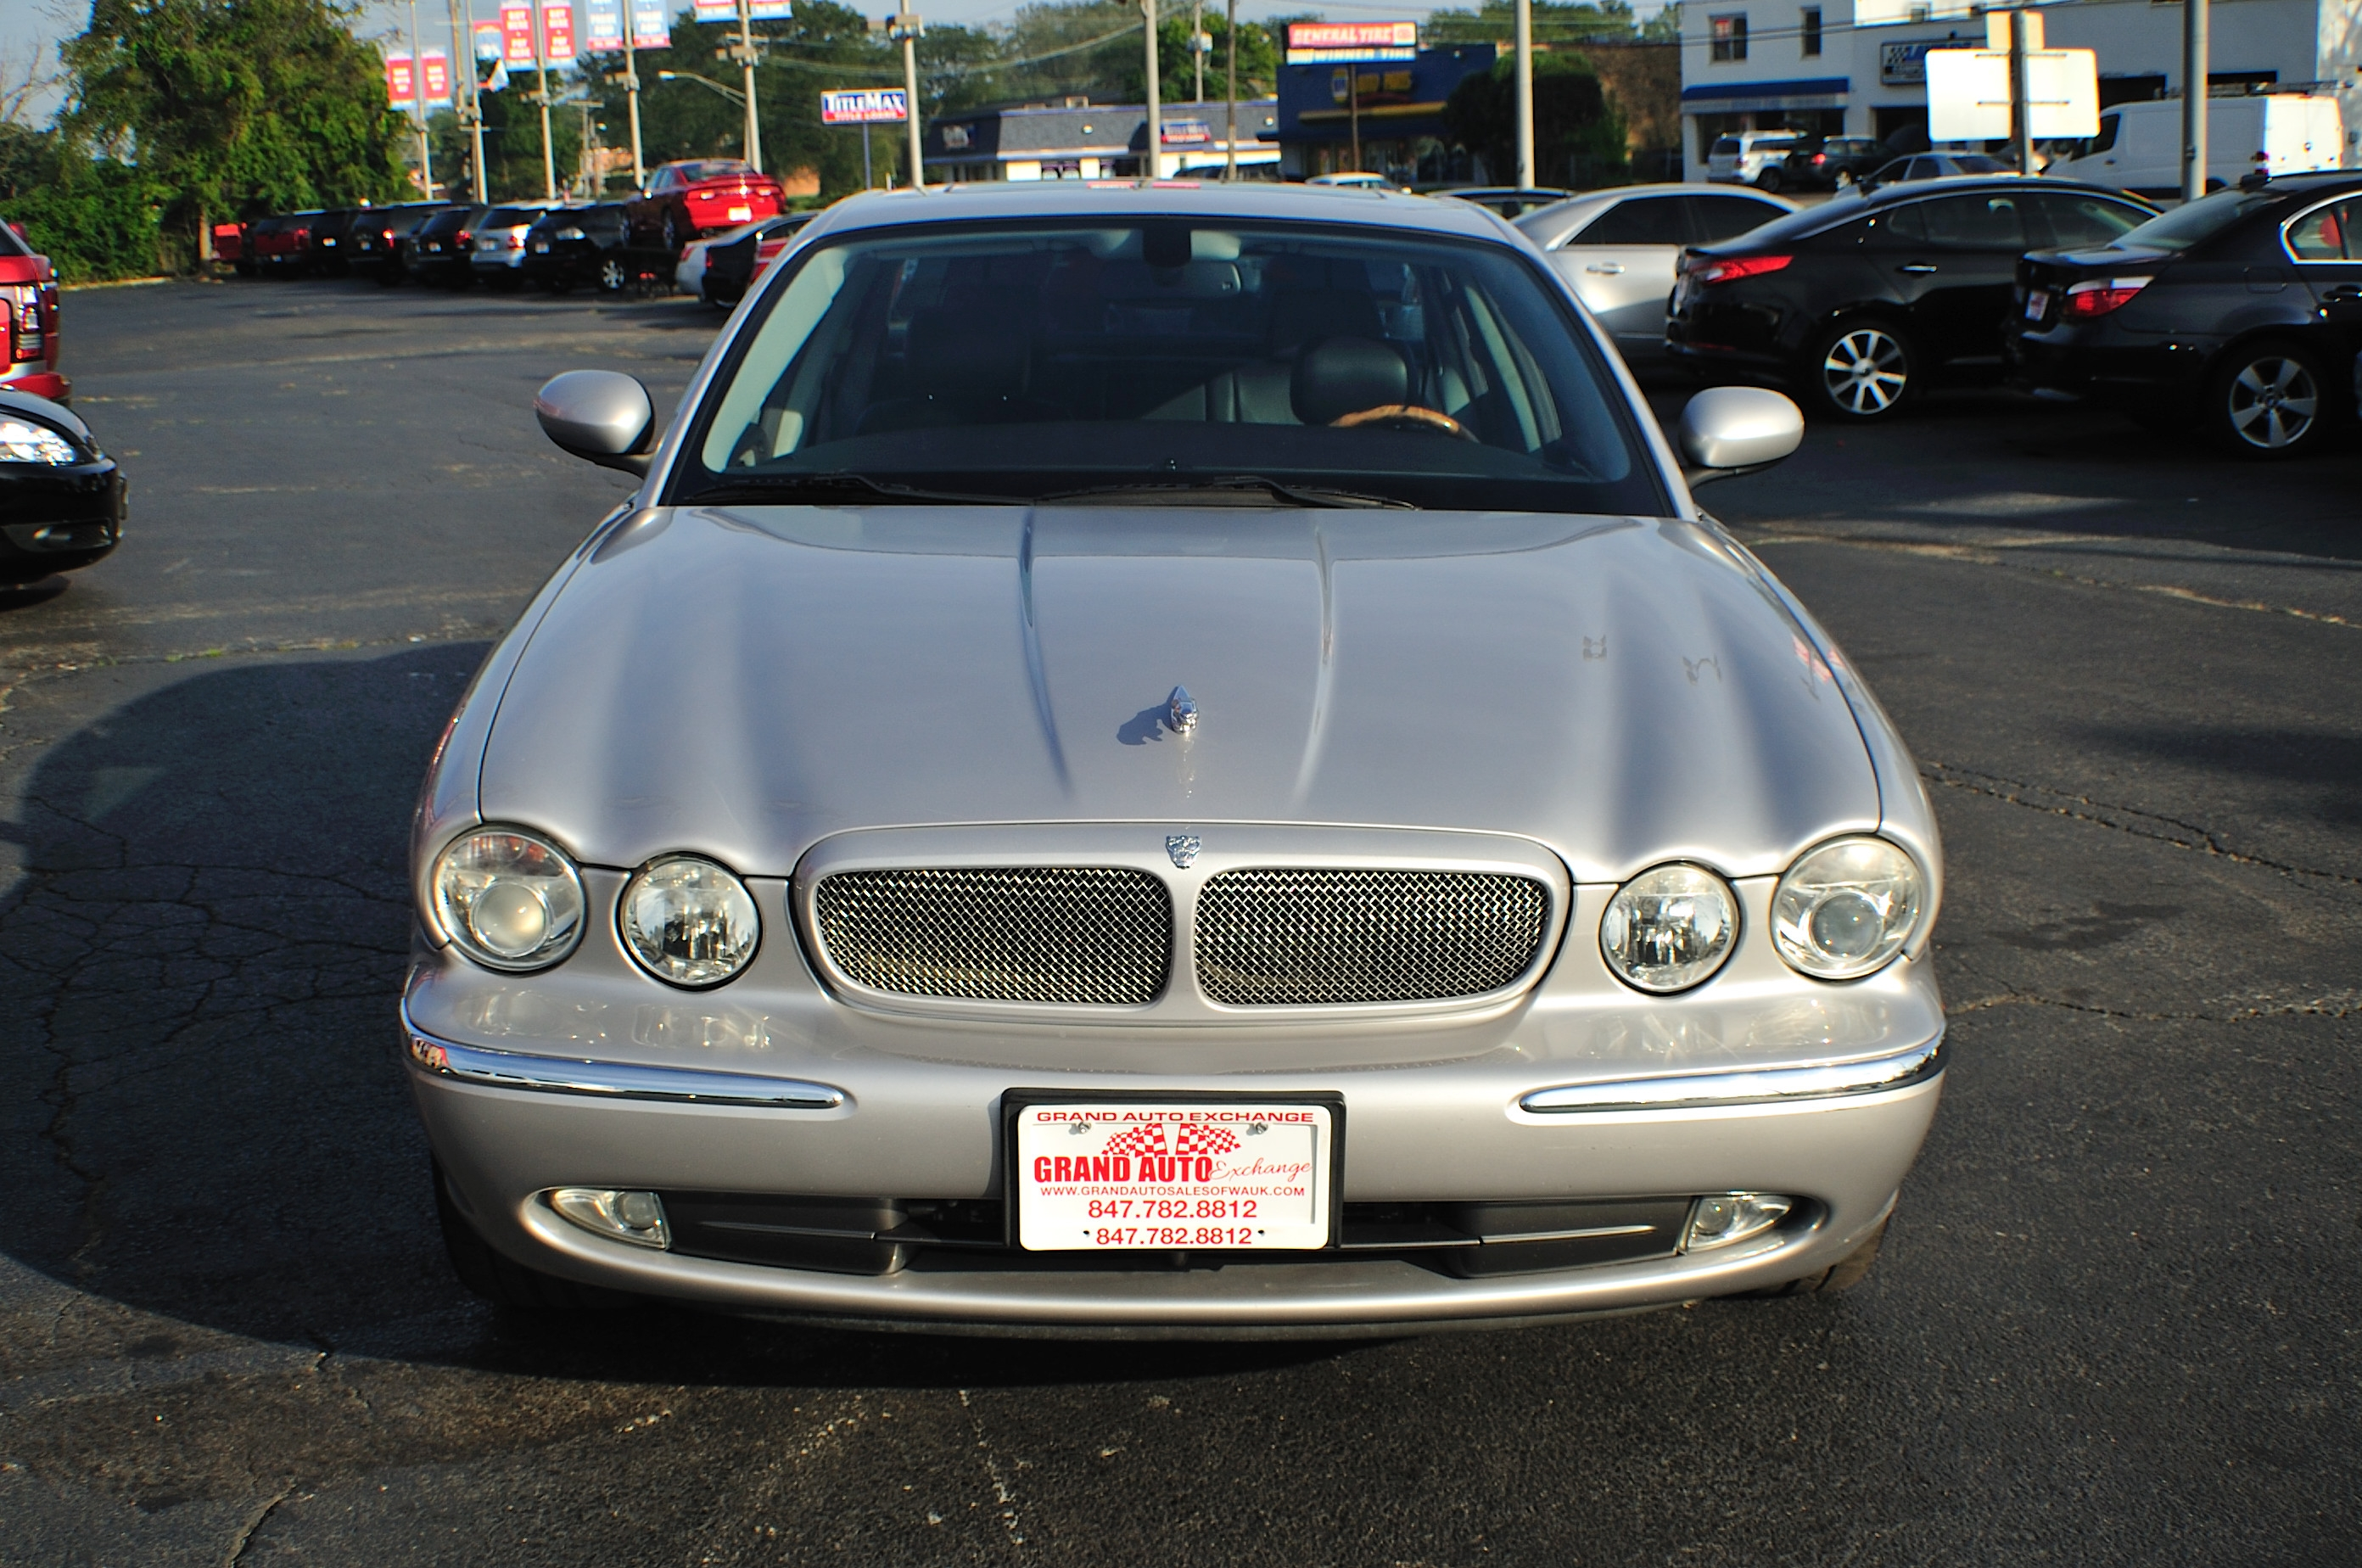 2005 Jaguar XJR Type Silver Sport Sedan Used Car Sale Gurnee Kenosha Mchenry